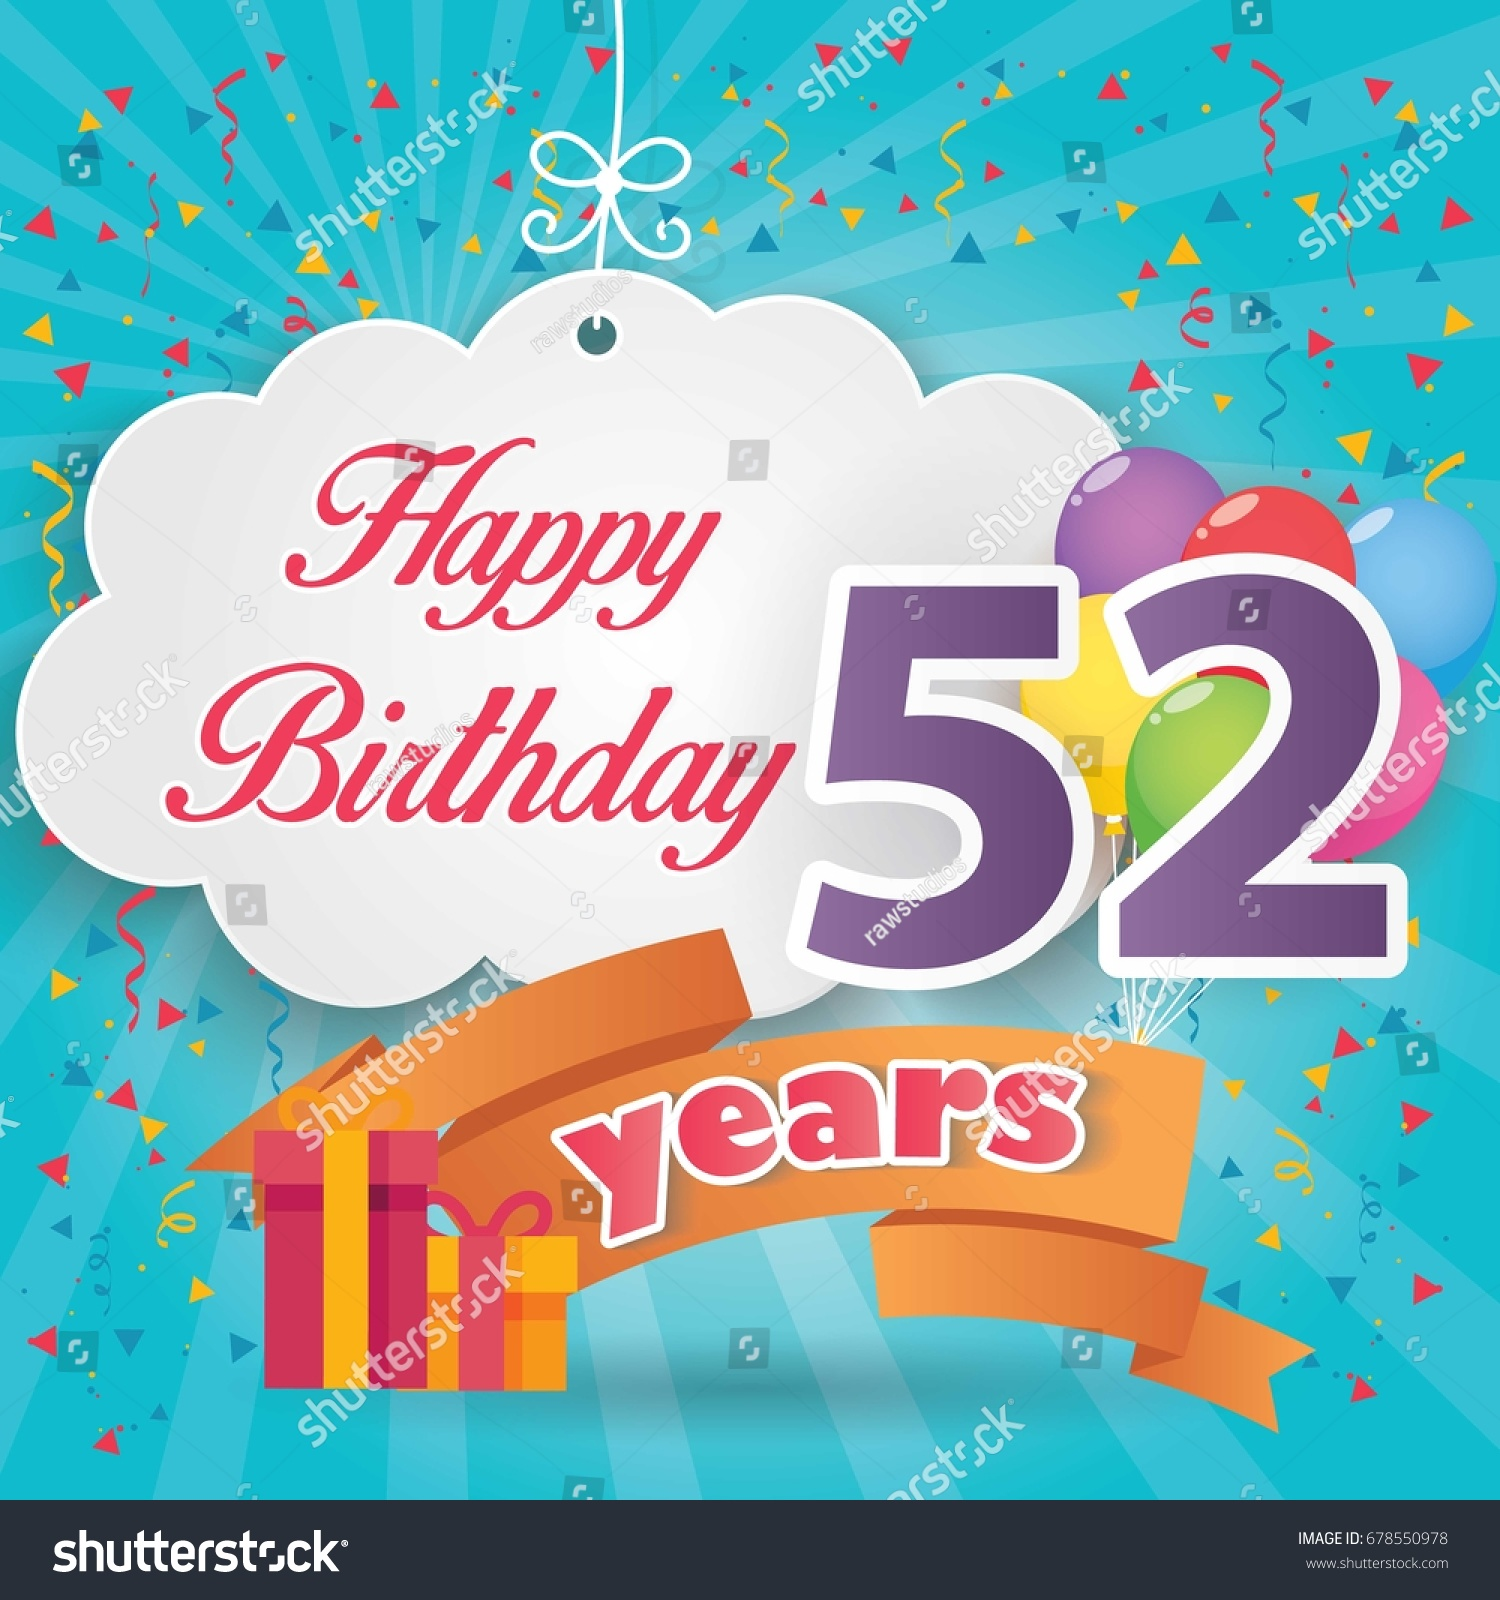 52 Nd Birthday Celebration Greeting Card Origami Paper Art Design Party Poster Background With